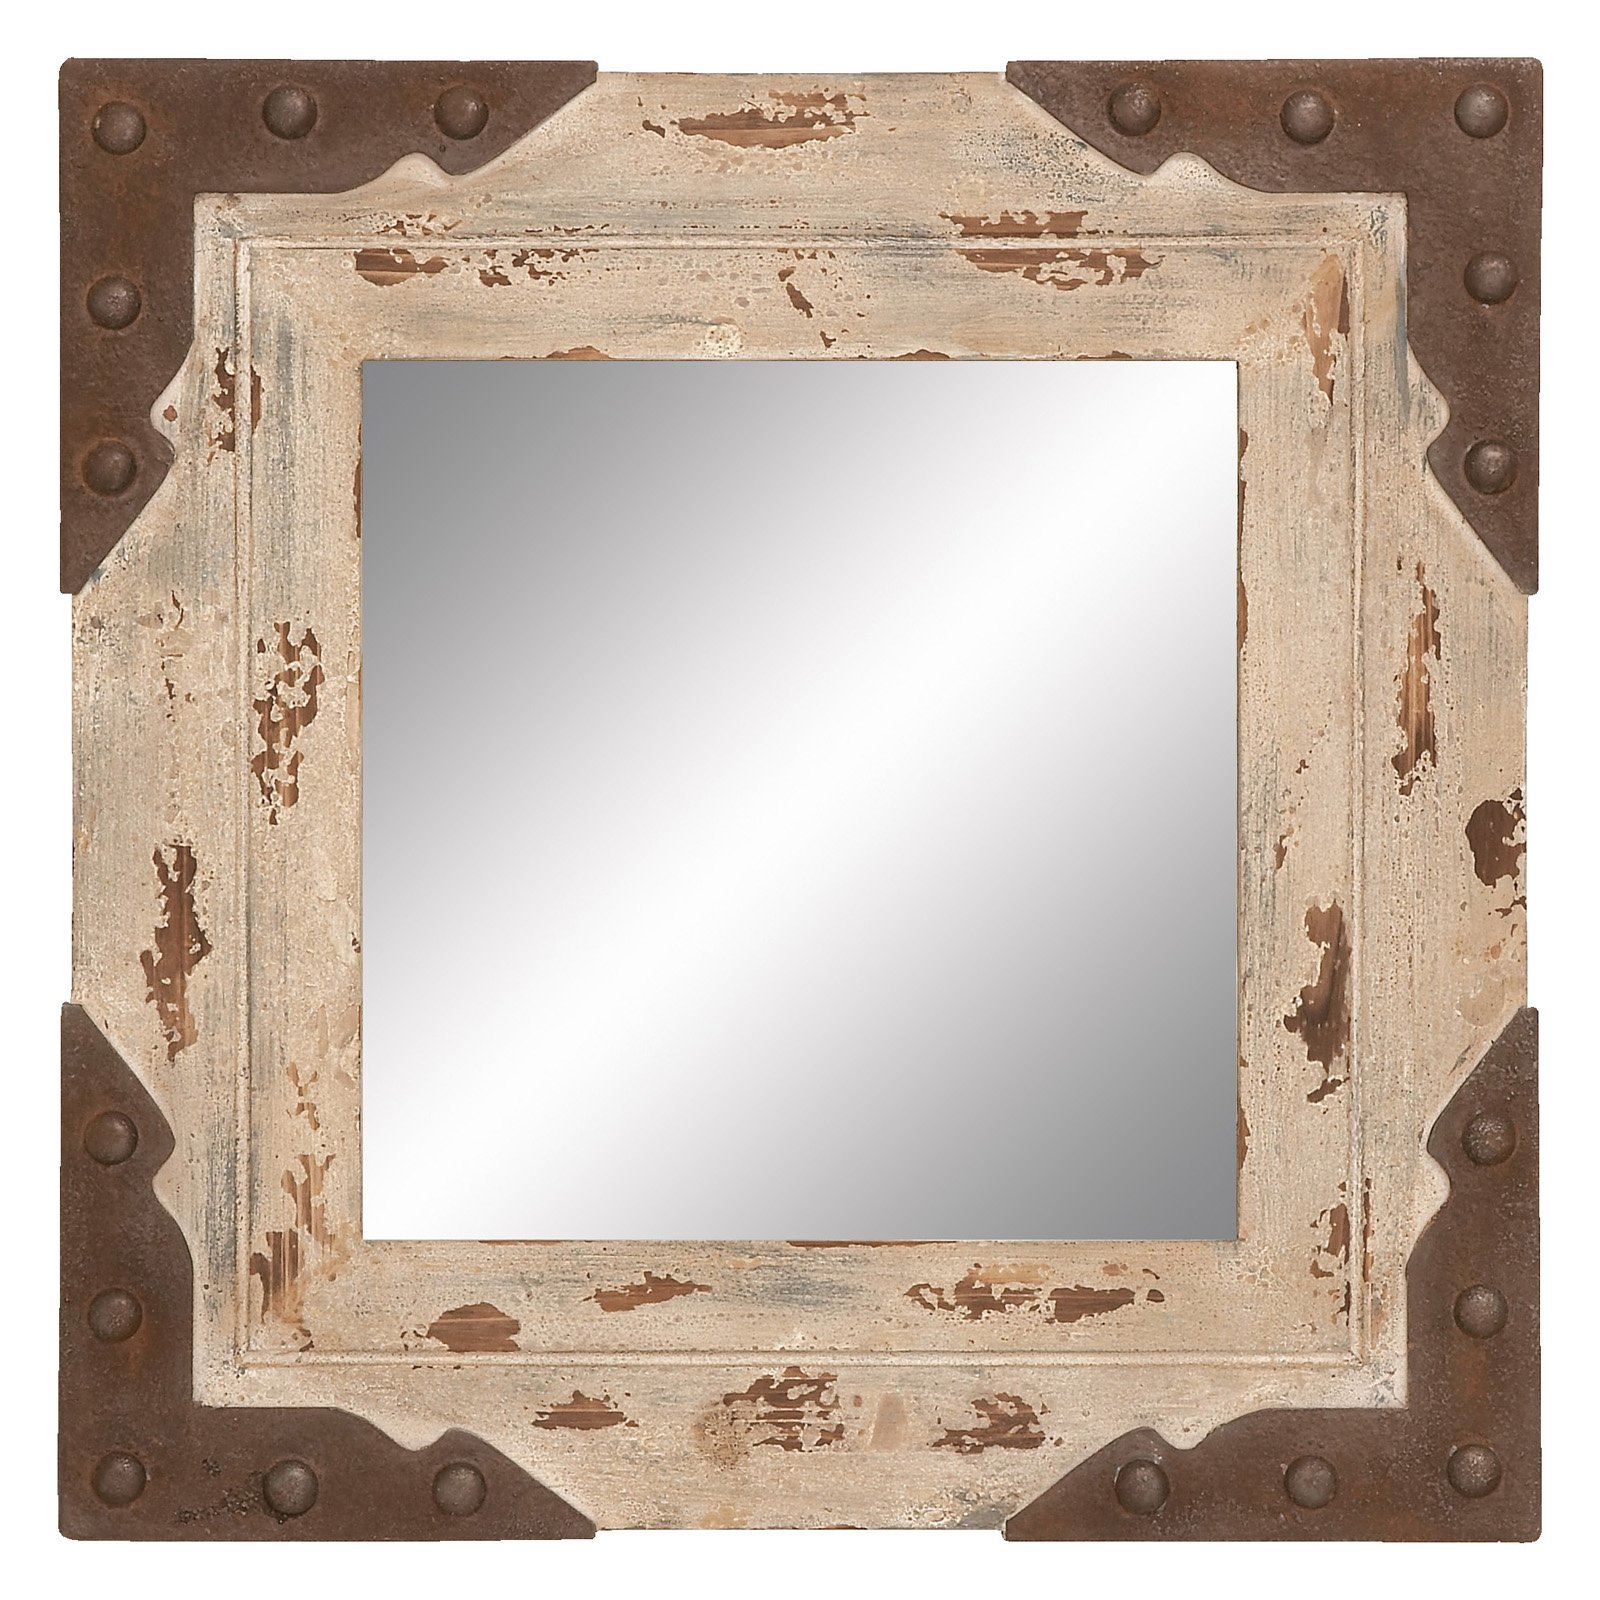 Decmode Wood and Metal Mirror, Multi Color